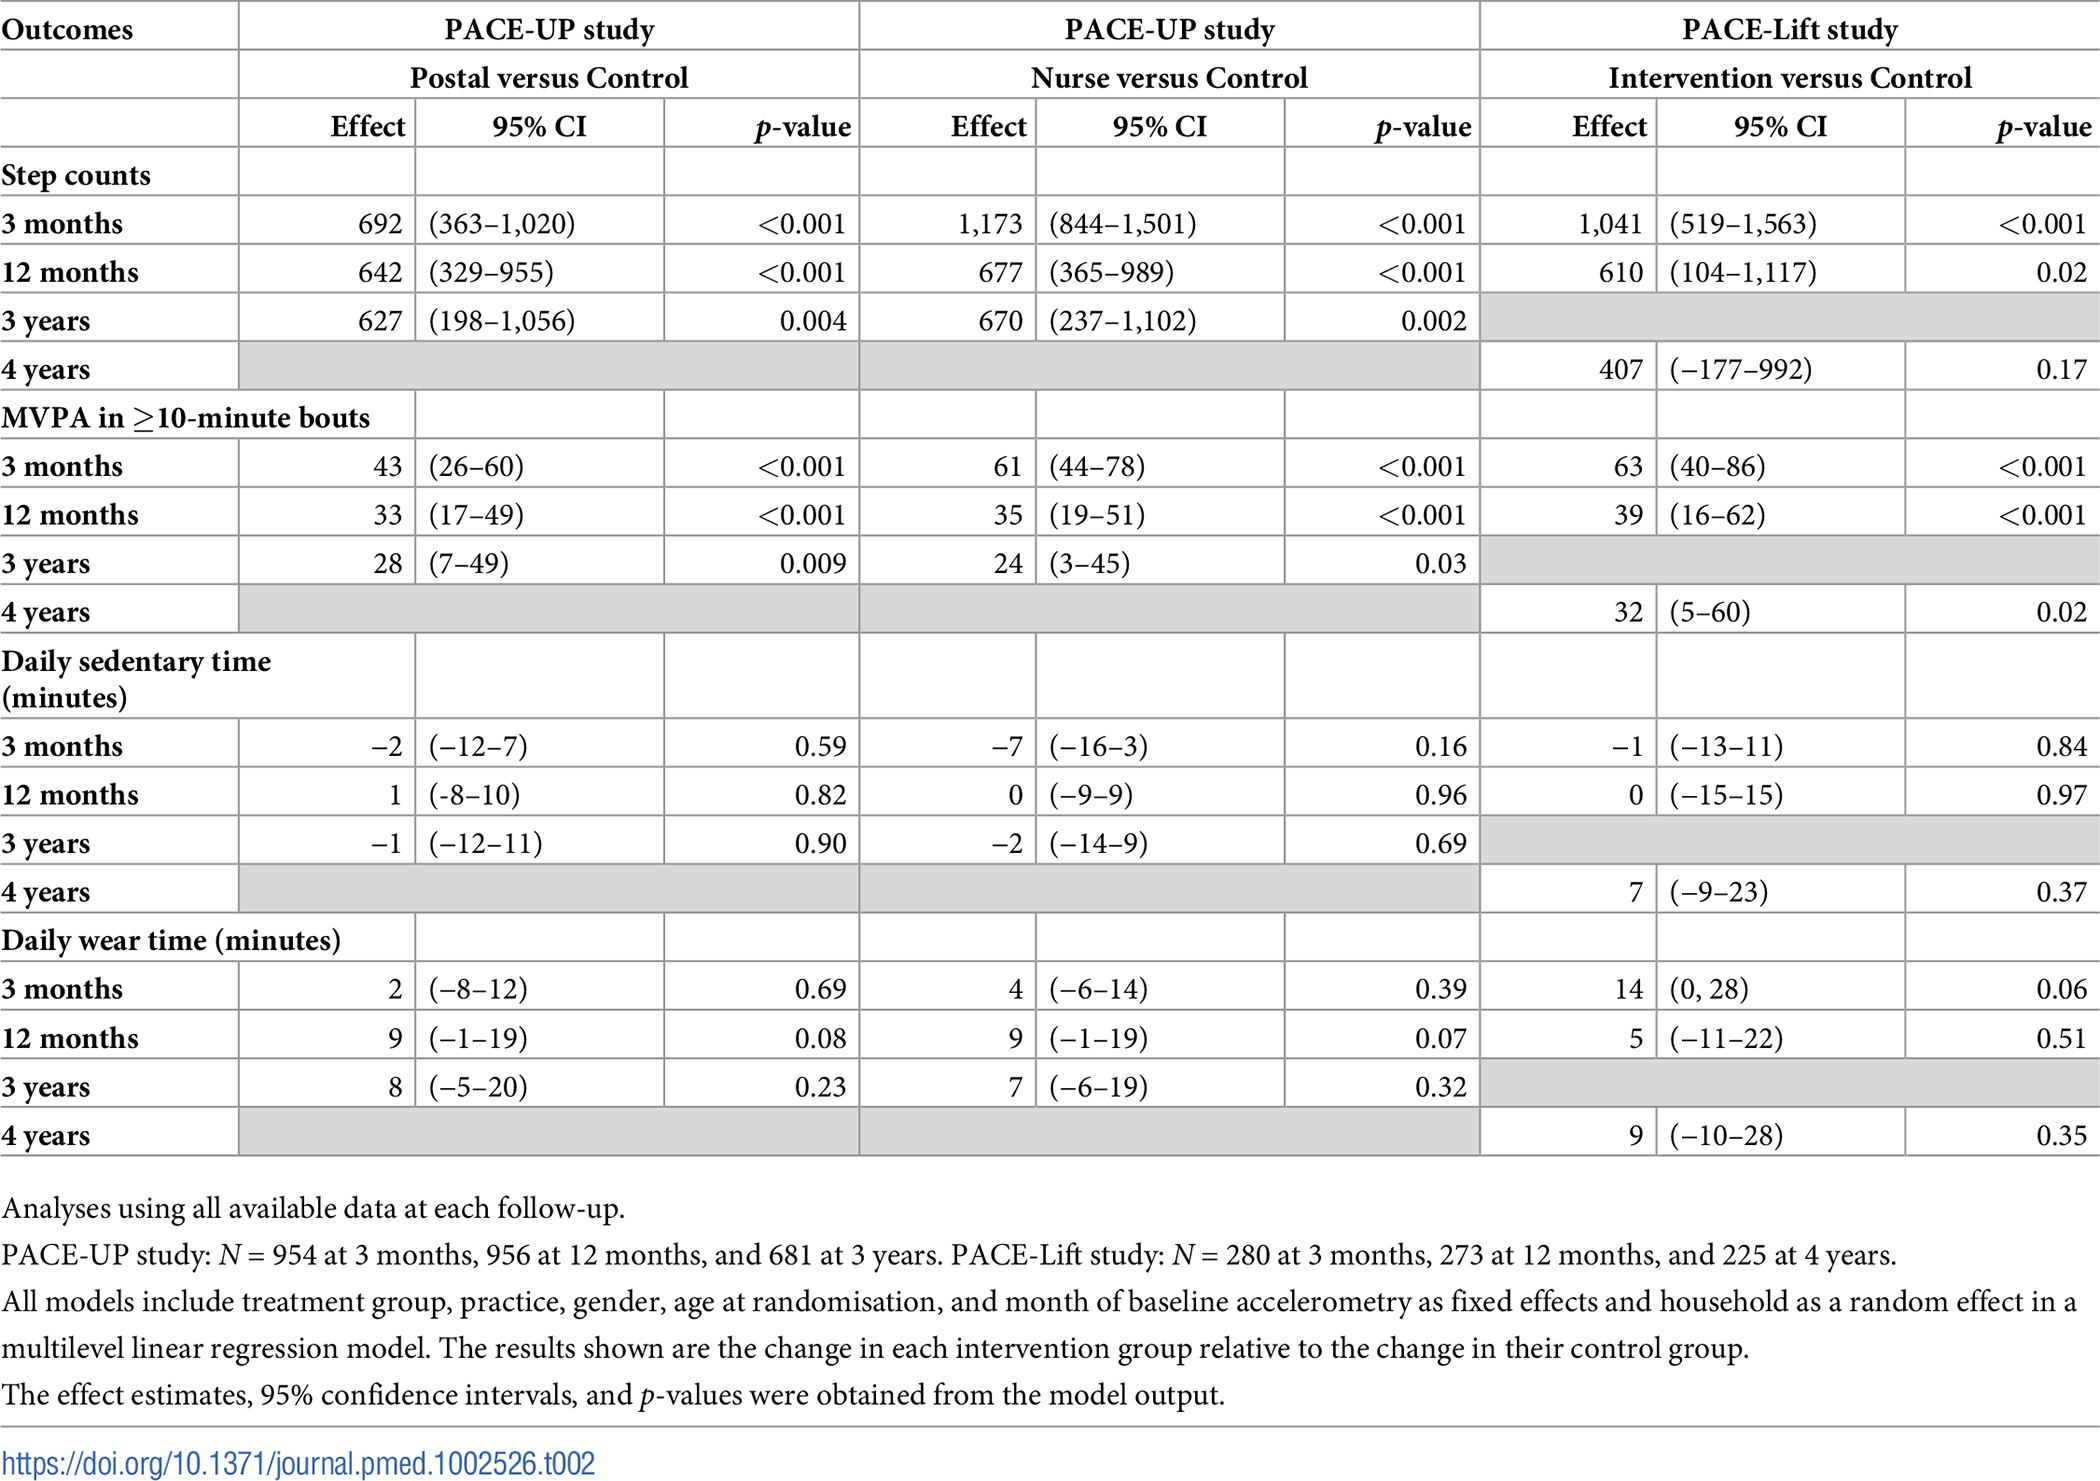 PACE-UP and PACE-Lift studies: Accelerometry outcomes at 3 months, 12 months, and 3 years (PACE-UP) and 4 years (PACE-Lift).